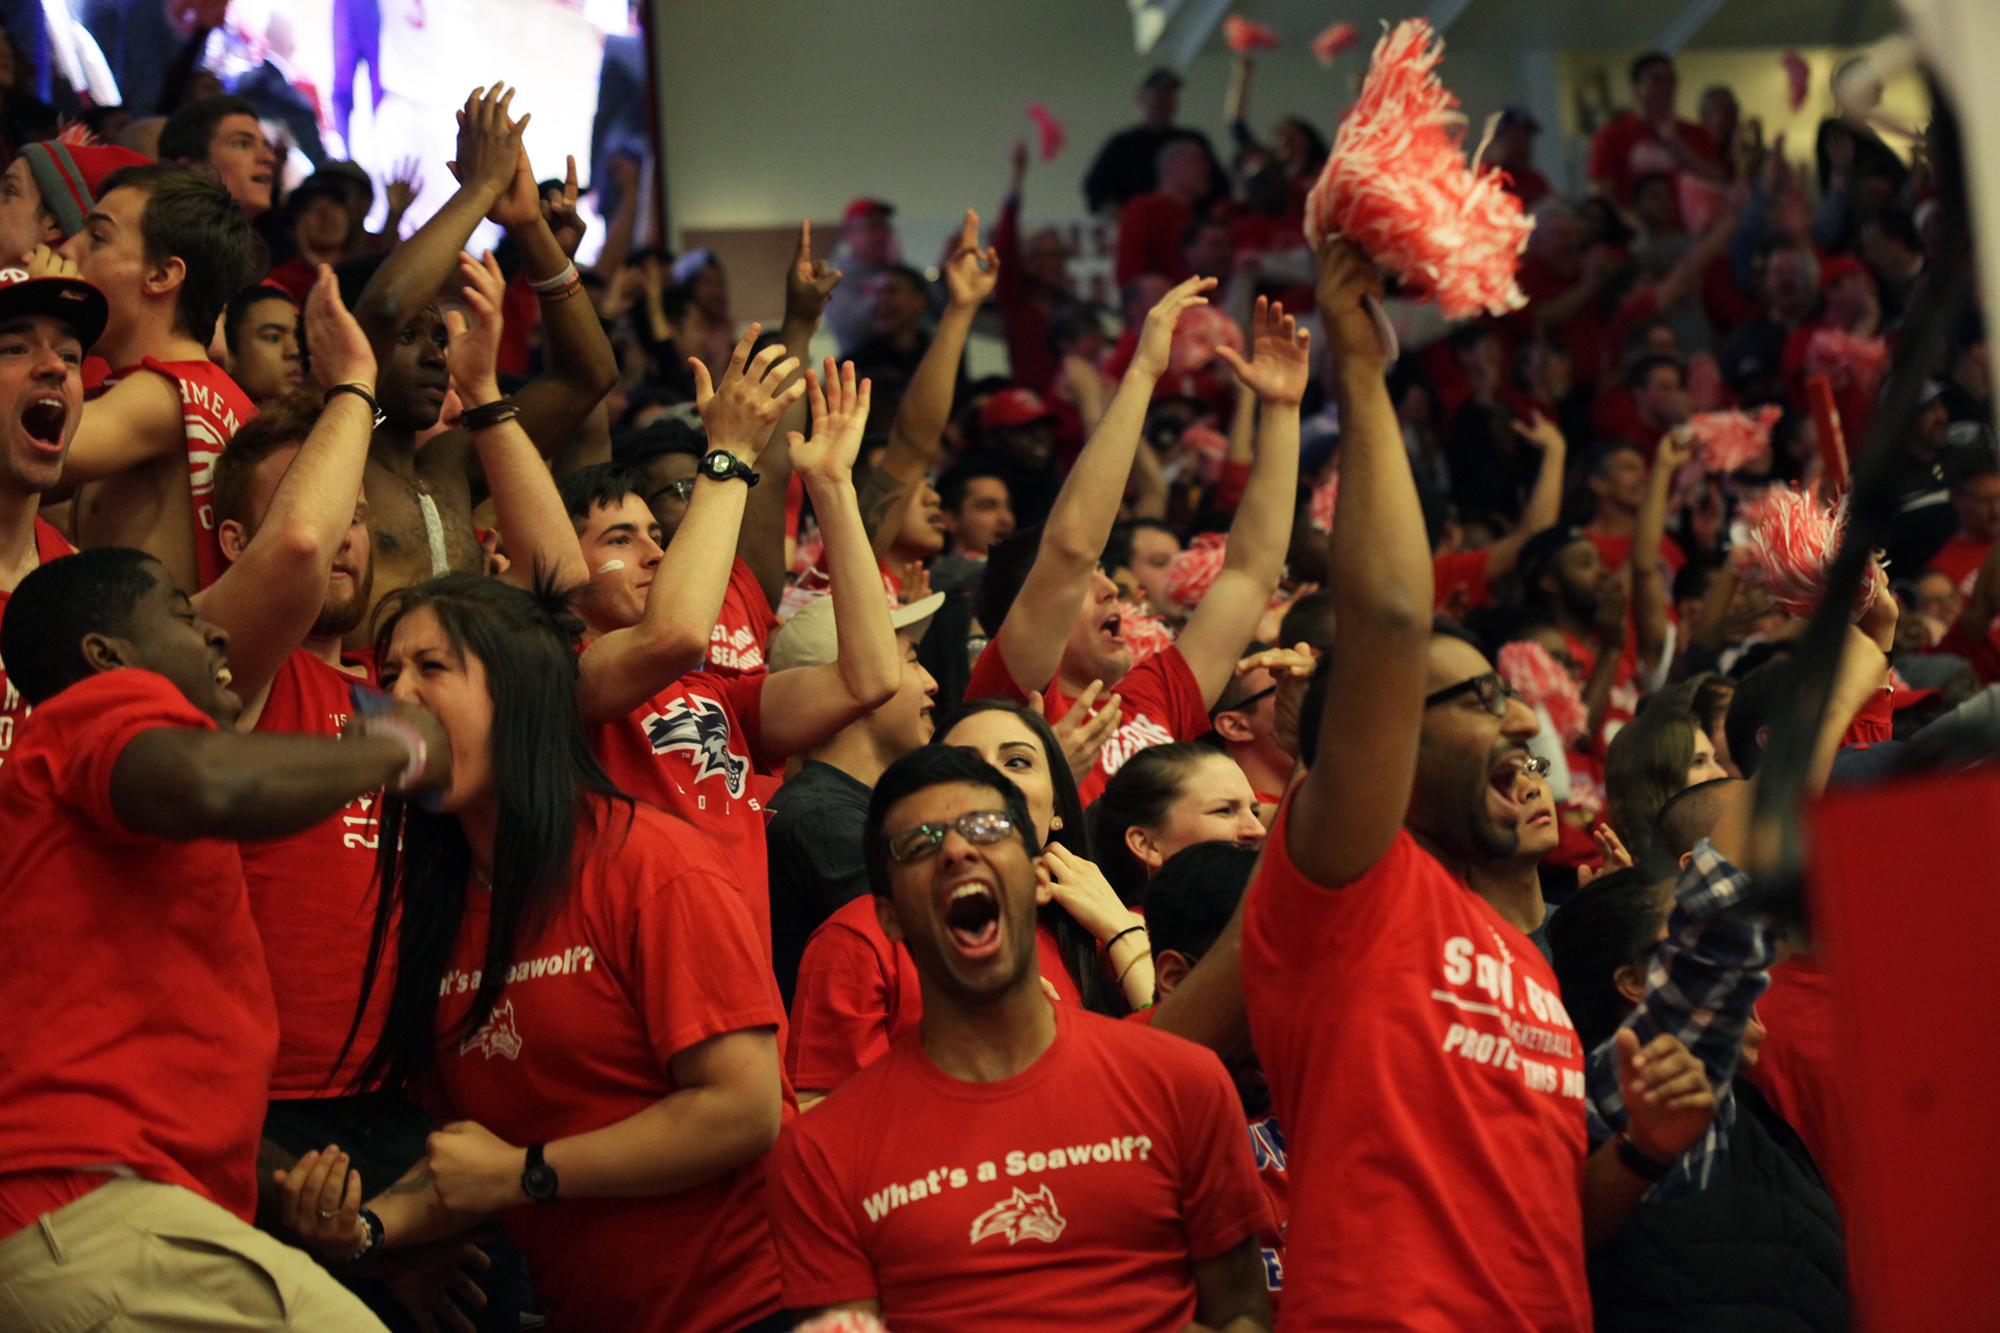 Stony Brook fans roar as Jameel Warney scores a layup shot against Vermont, earning the  Seawolves a three point lead. CHRISTOPHER CAMERON/THE STATESMAN